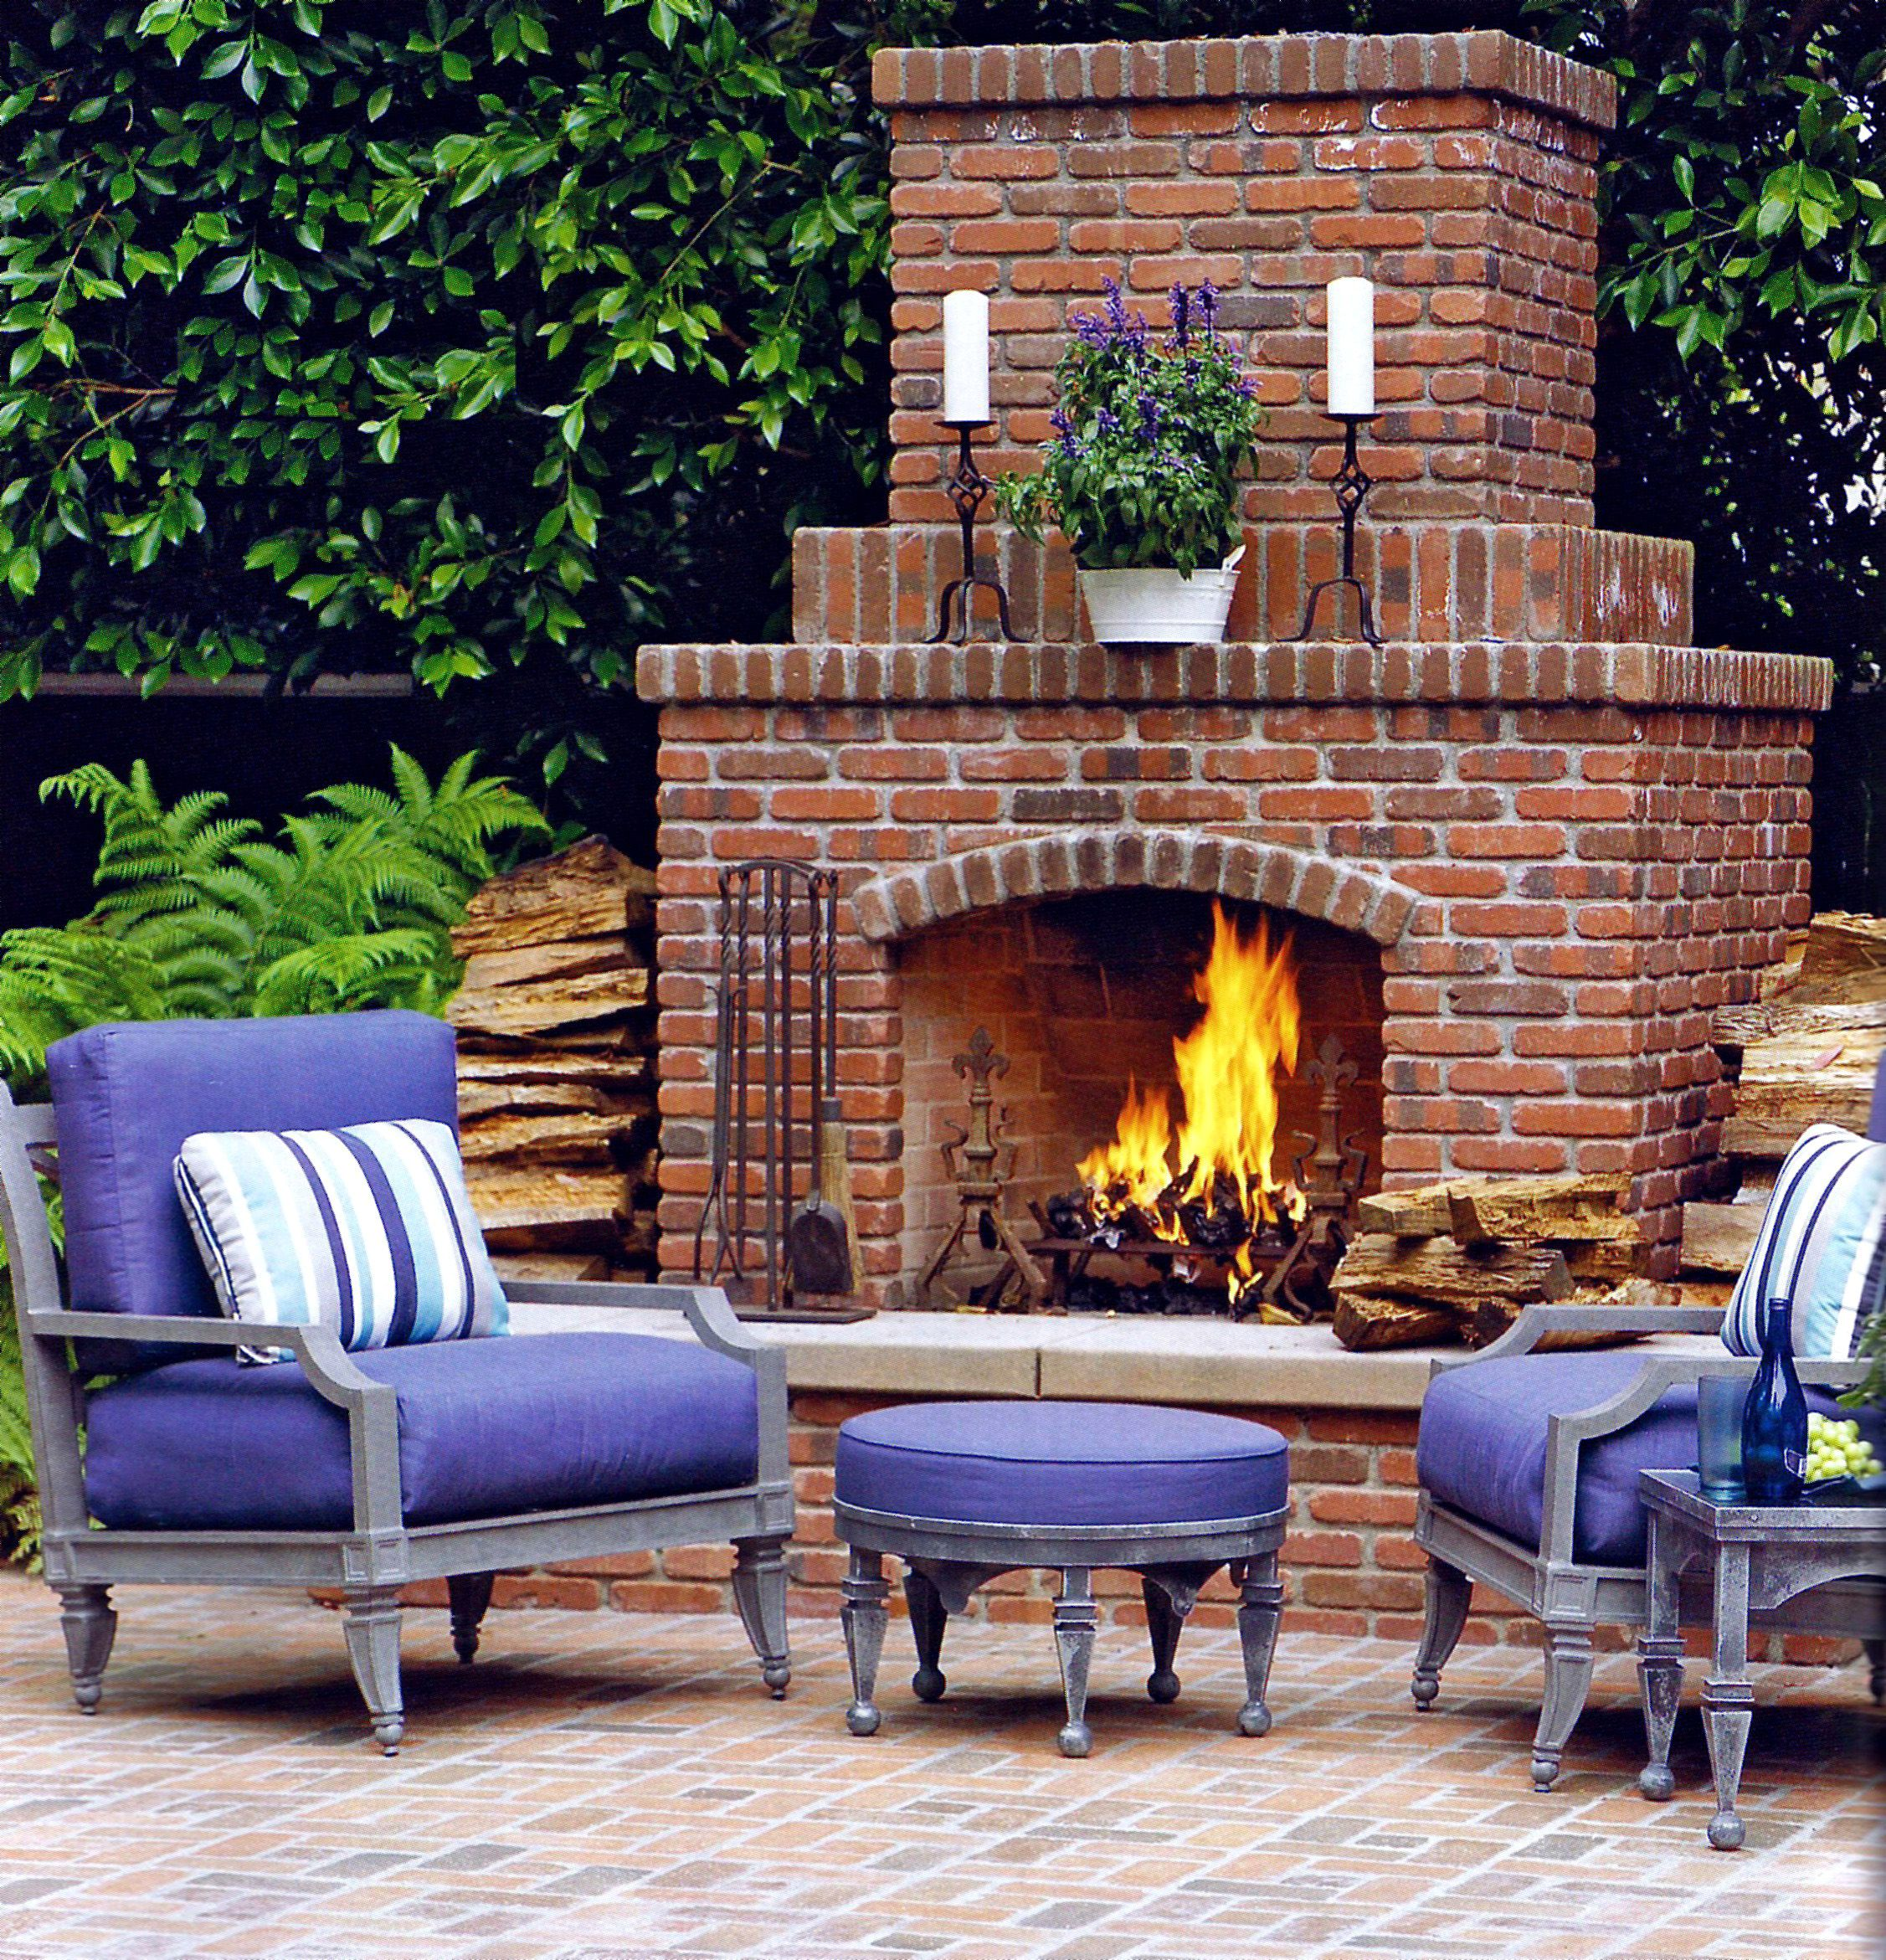 868b57739ace17b07c83d04a6e6b2e26 Top Result 50 Awesome Prefab Outdoor Fireplace Photography 2018 Hiw6